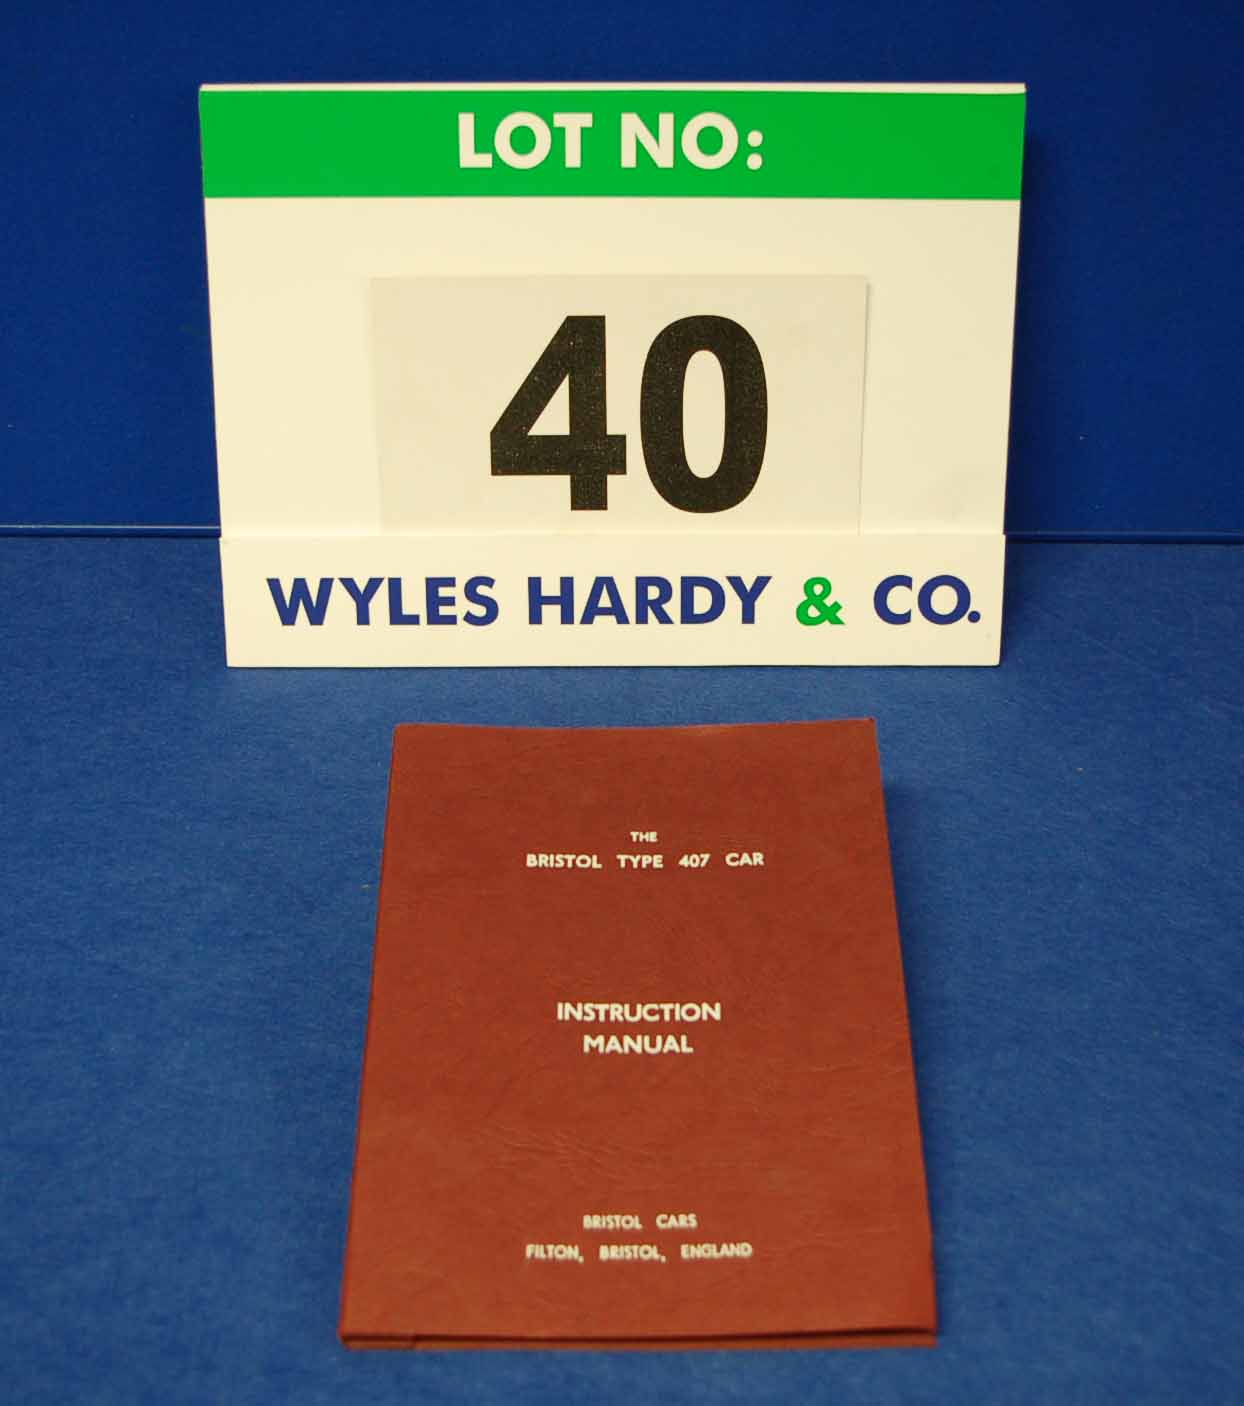 A Copy of The Bristol Type 407 Car Instruction Manual